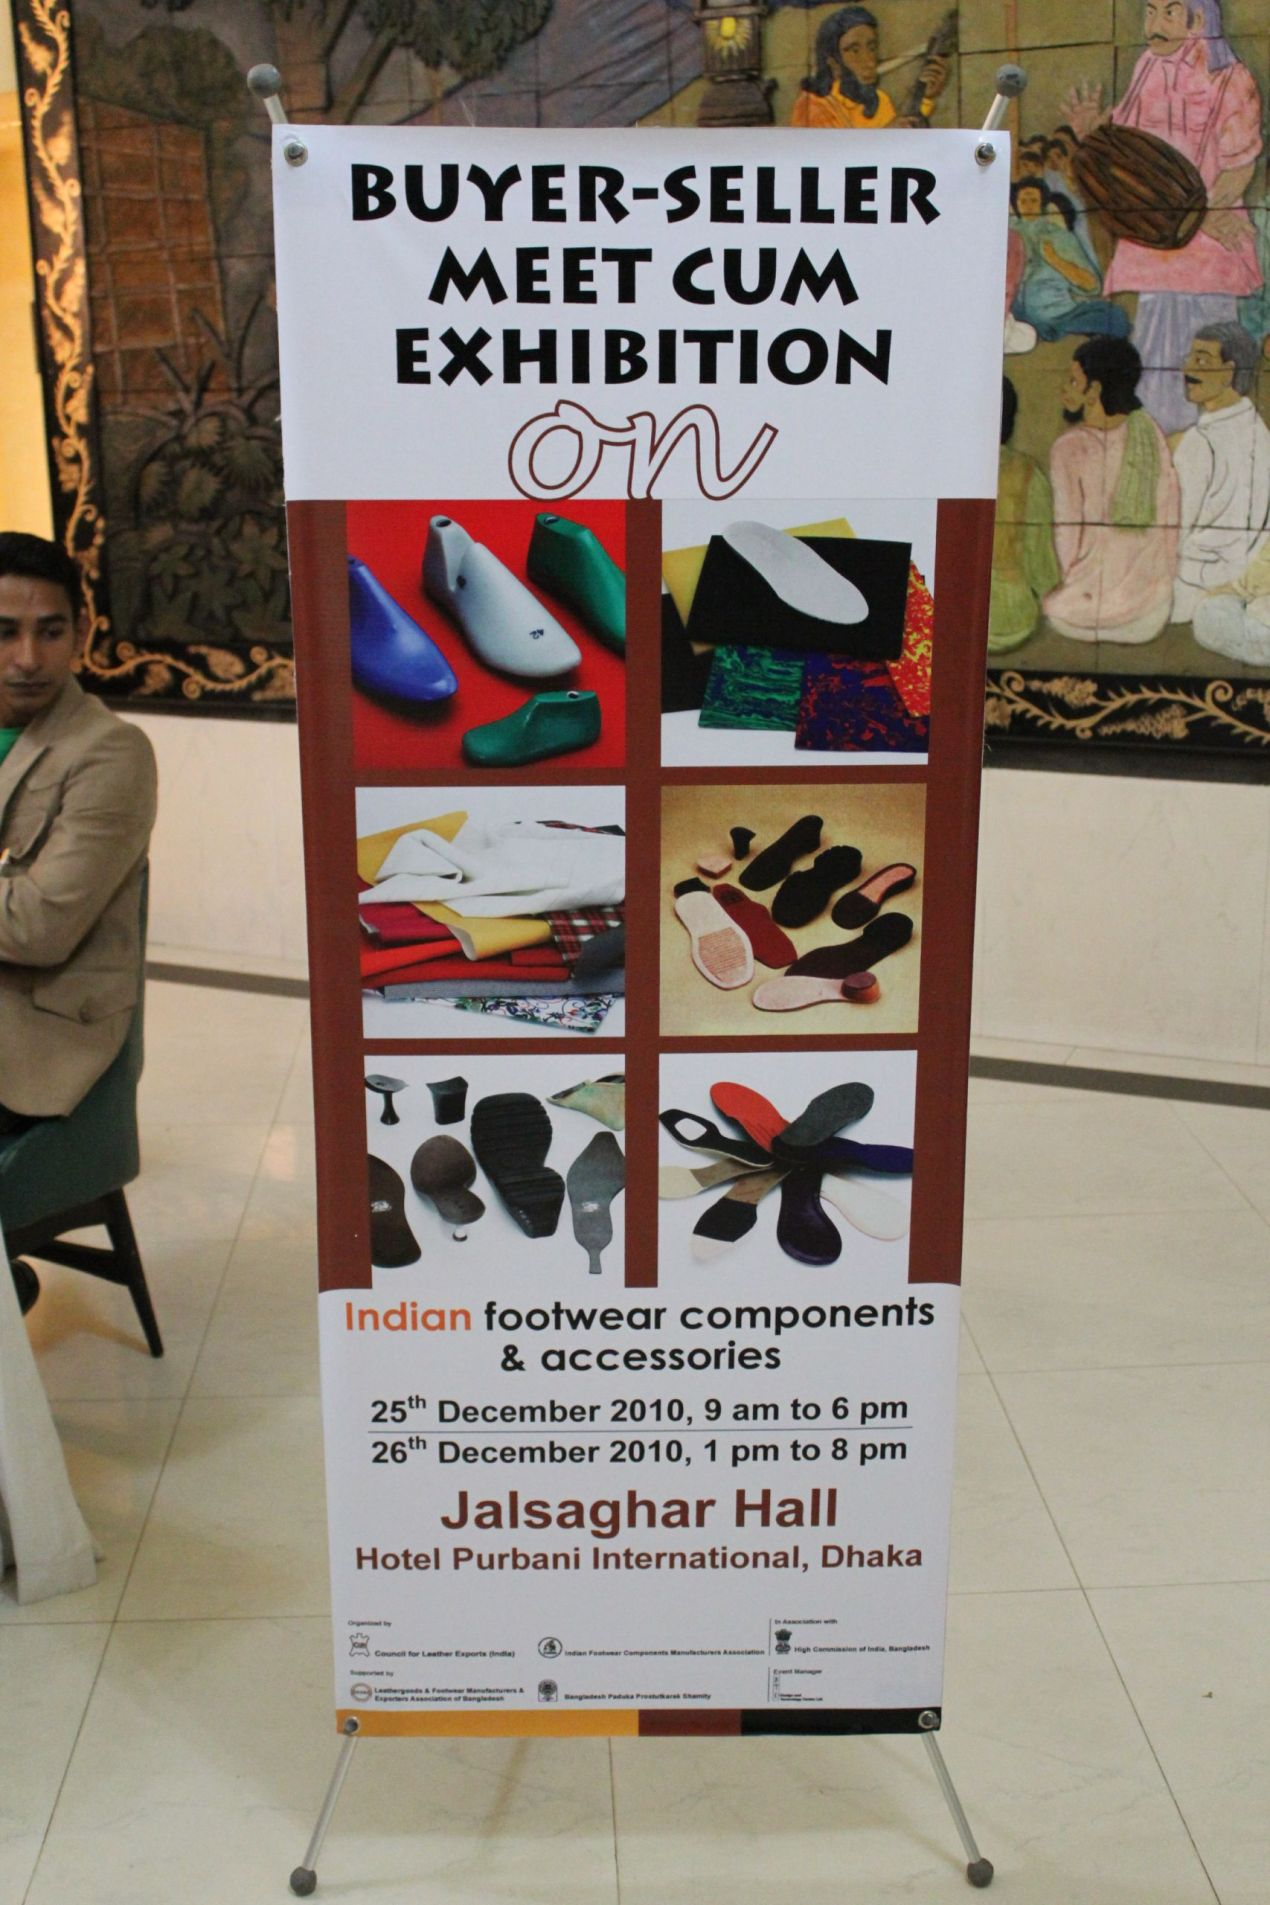 DTC-Expo-Post-Buyers-Sellers-Meet-cum-Exhibition-Featured-Image-07